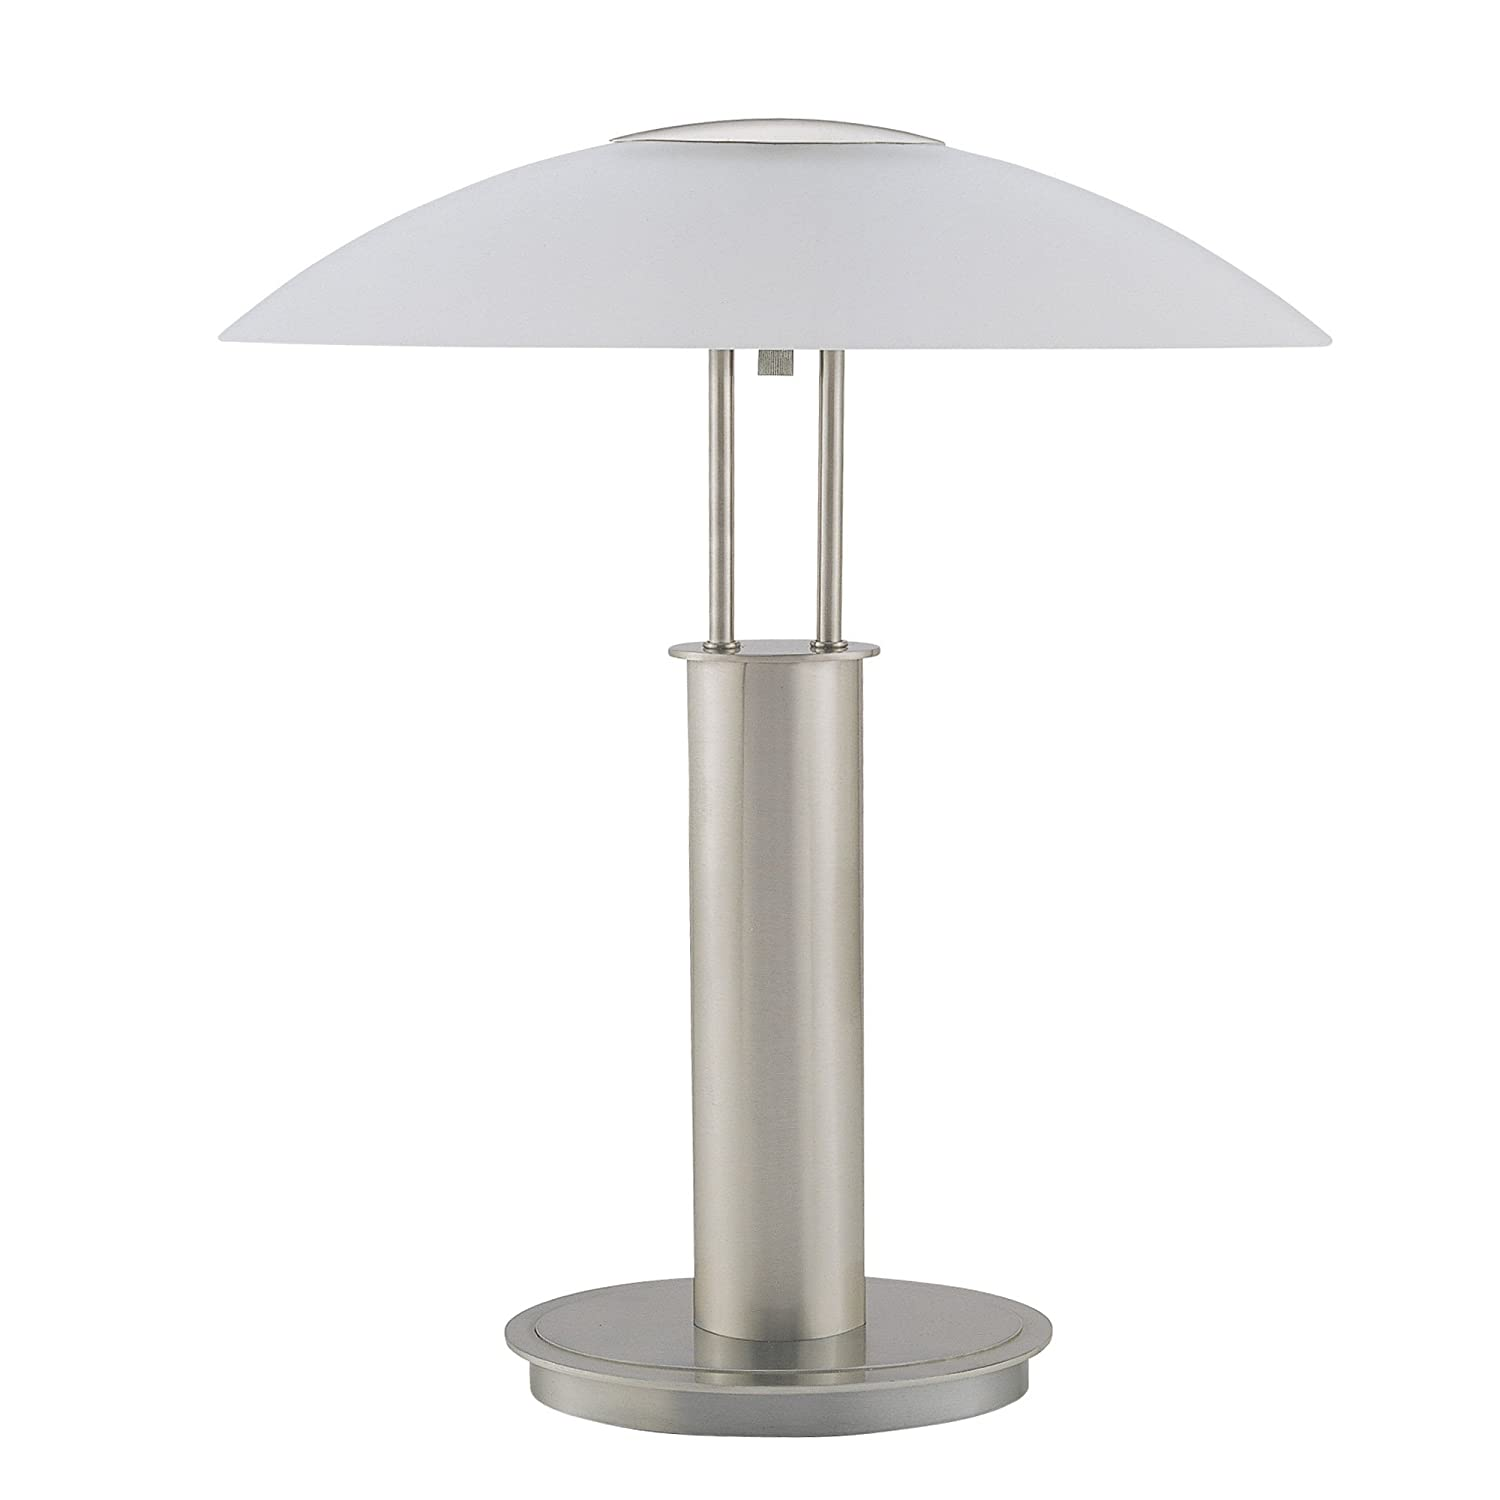 Ore international 6276 18 inch touch table lamp brushed nickel with ore international 6276 18 inch touch table lamp brushed nickel with glass mushroom lamp shade amazon keyboard keysfo Image collections